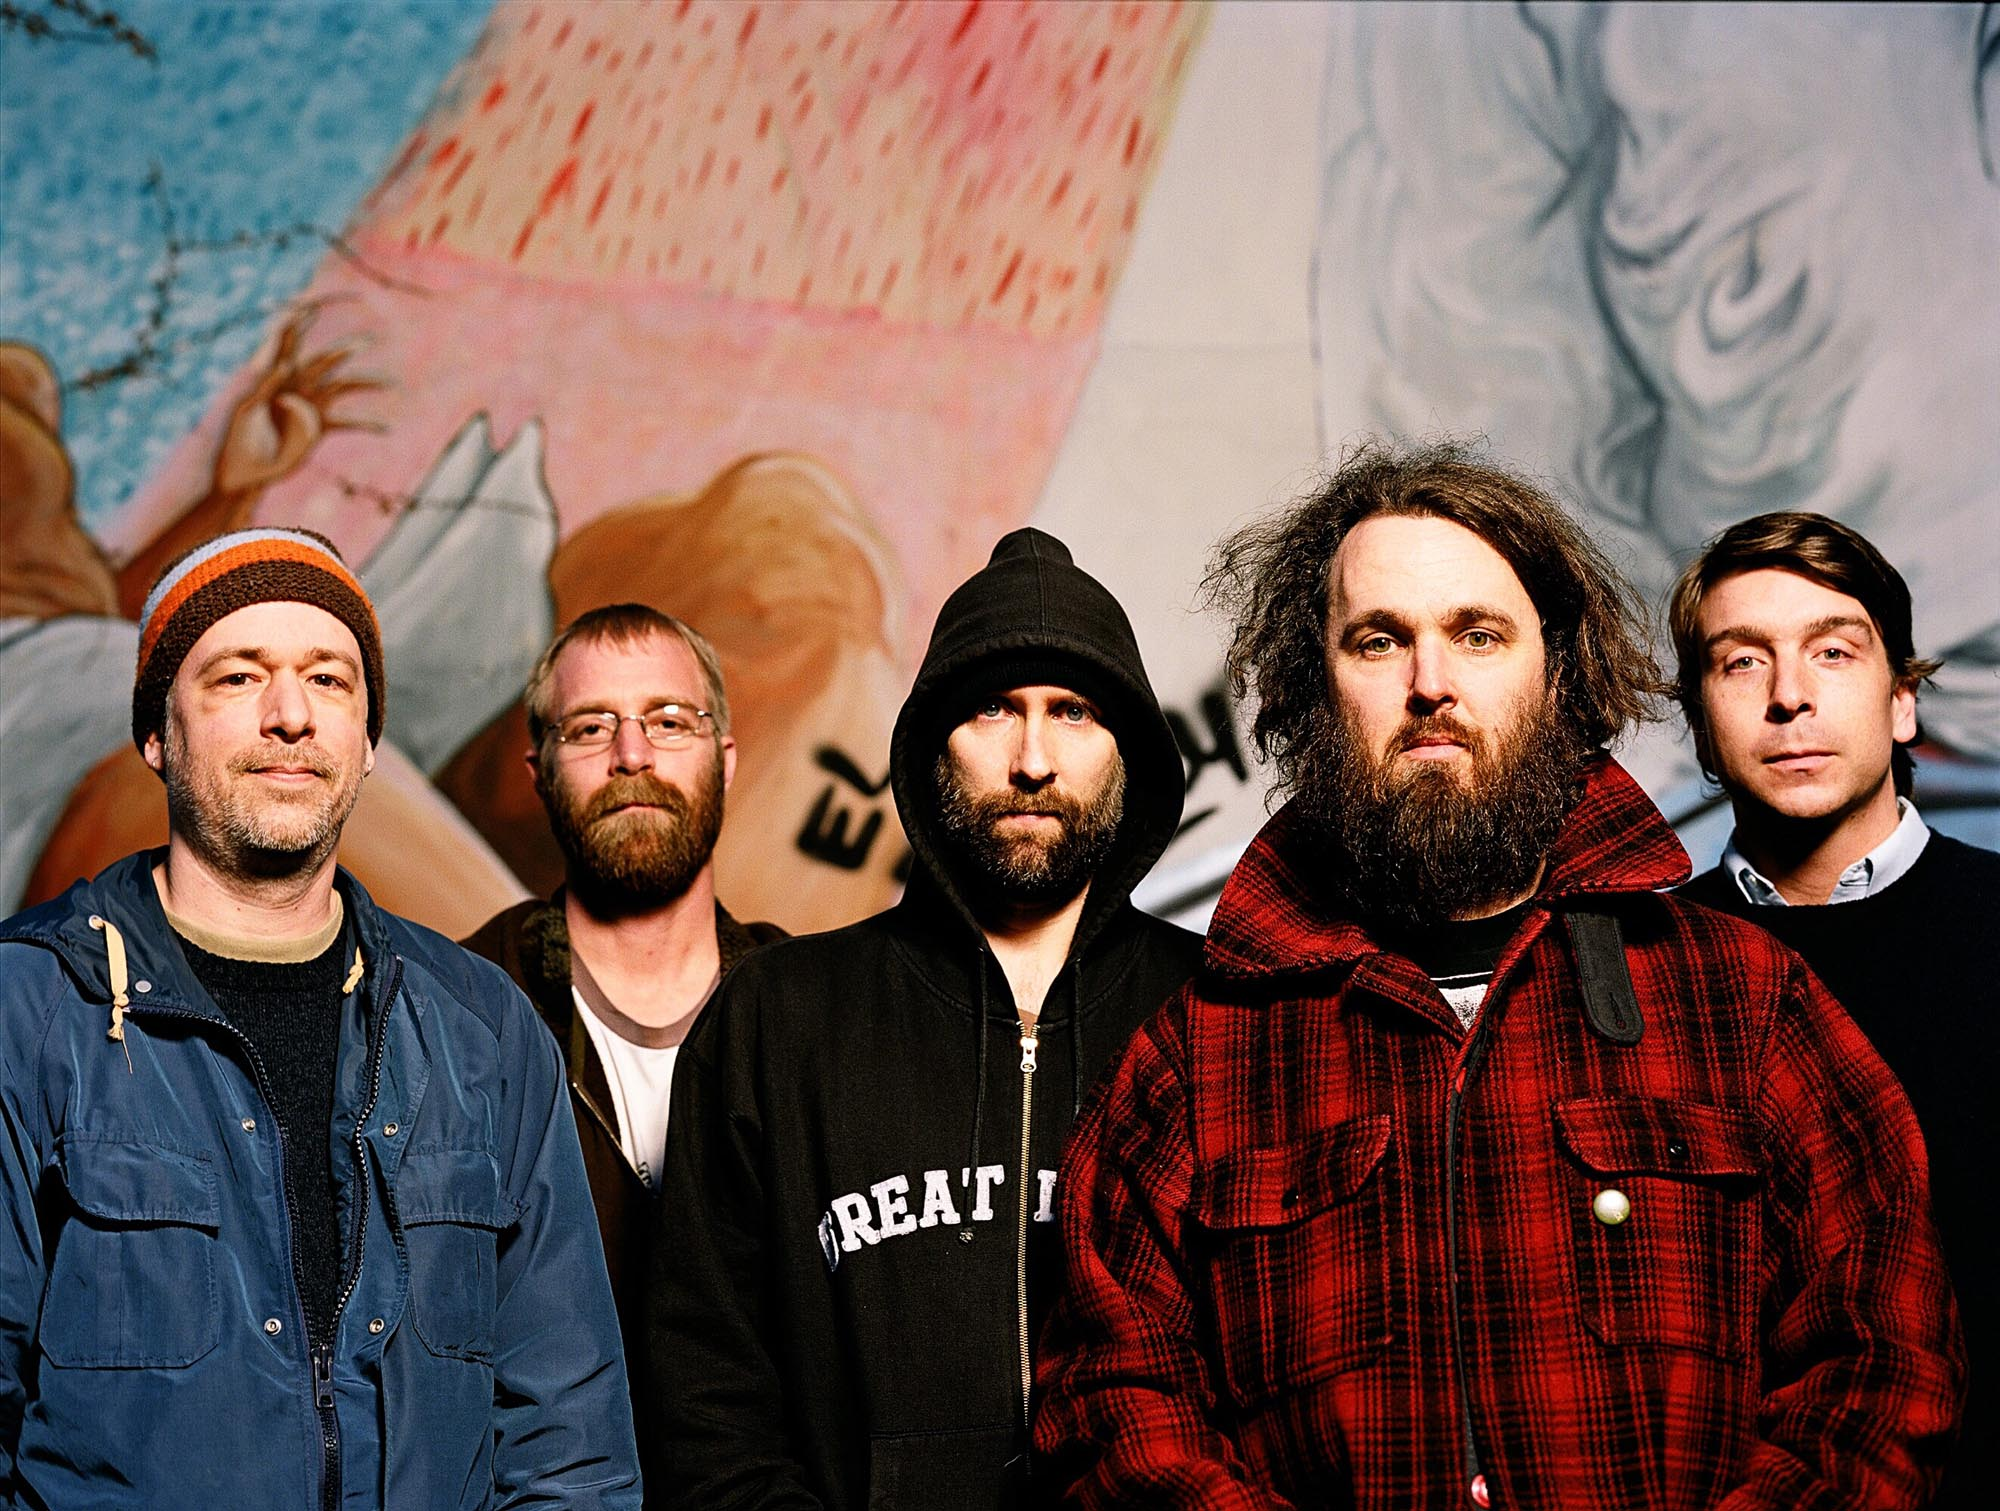 UNITED STATES - APRIL 10:  Photo of BUILT TO SPILL and Jim ROTH and Brett NELSON and Doug MARTSCH and Brett NETSON and Scott PLOUF; Posed studio group portrait L-R Jim Roth, Brett Nelson, Doug Martsch, Brett Netson and Scott Plouf  (Photo by Wendy Redfern/Redferns)